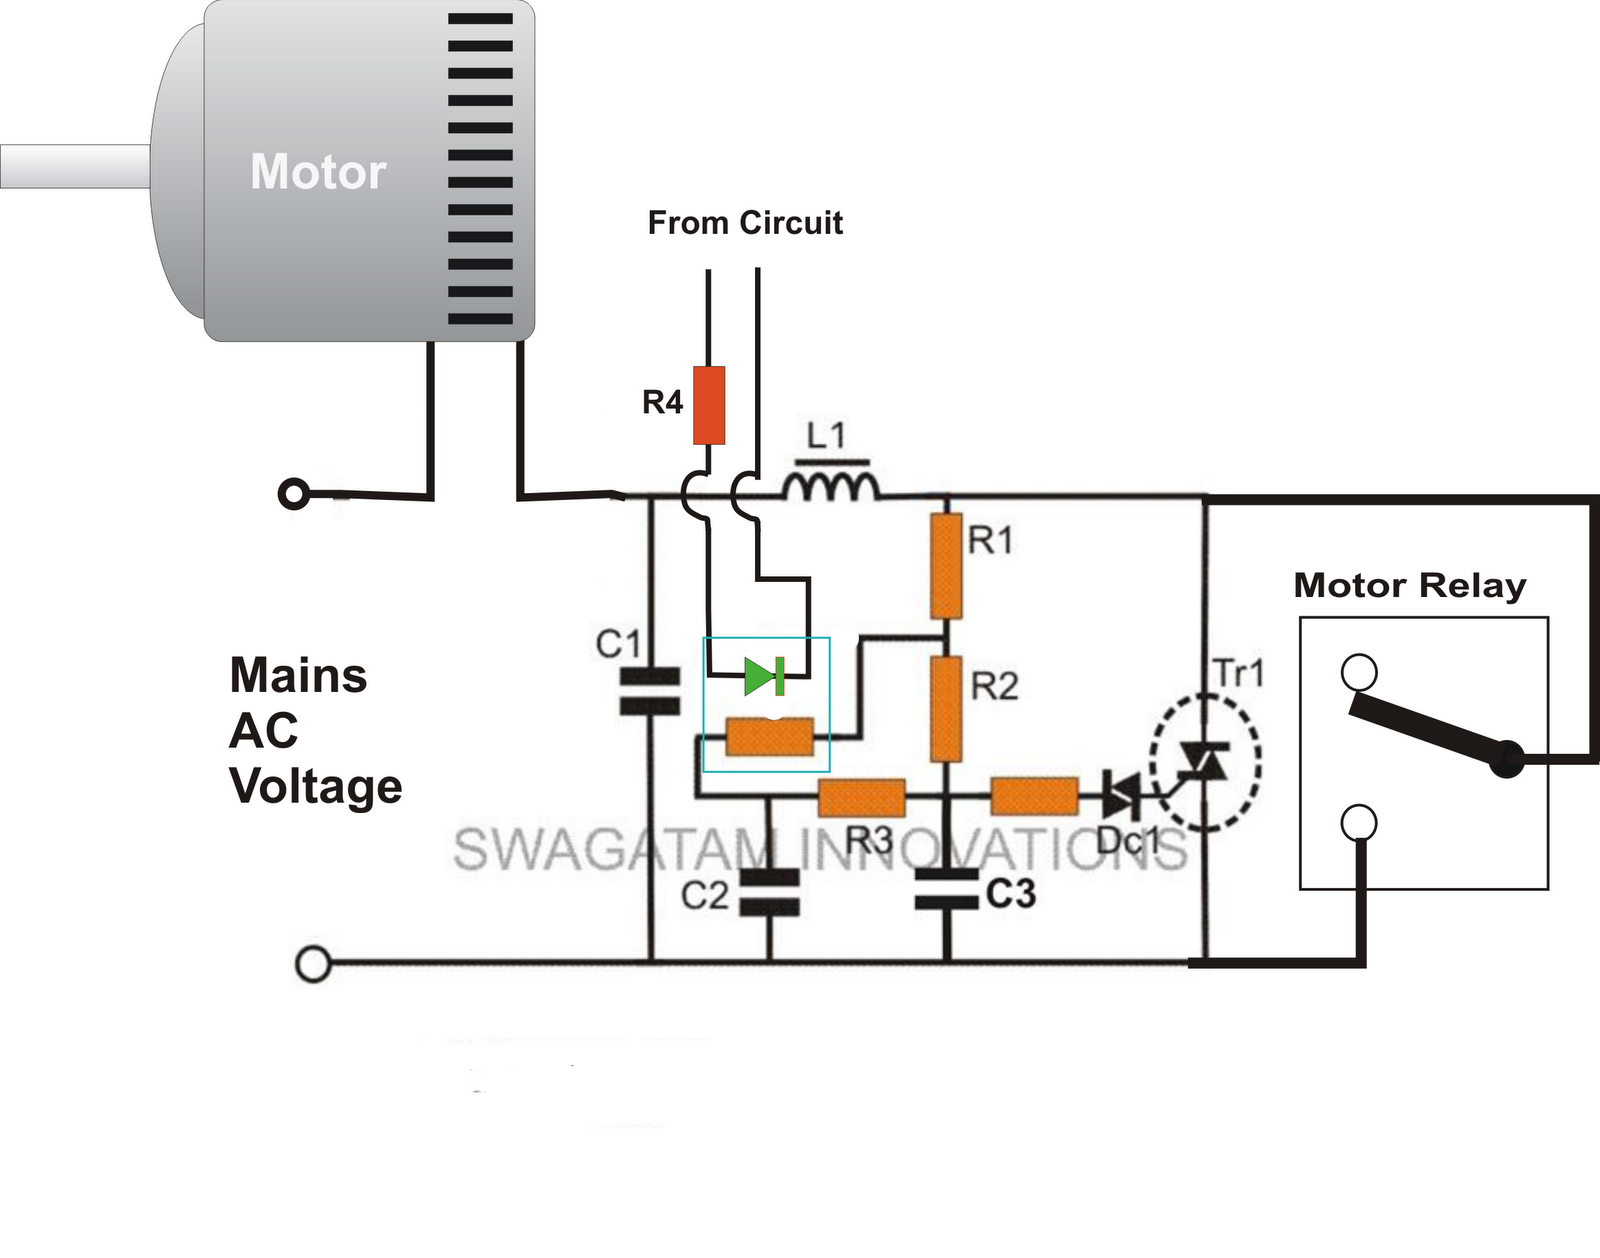 Honda Wiring Diagram besides Motor Starter Wiring Diagram moreover Johnson Outboard Wiring Diagram as well 3 Phase Contactor Wiring Diagram furthermore Oxygen Electron Shell Diagram. on motor starter control wiring